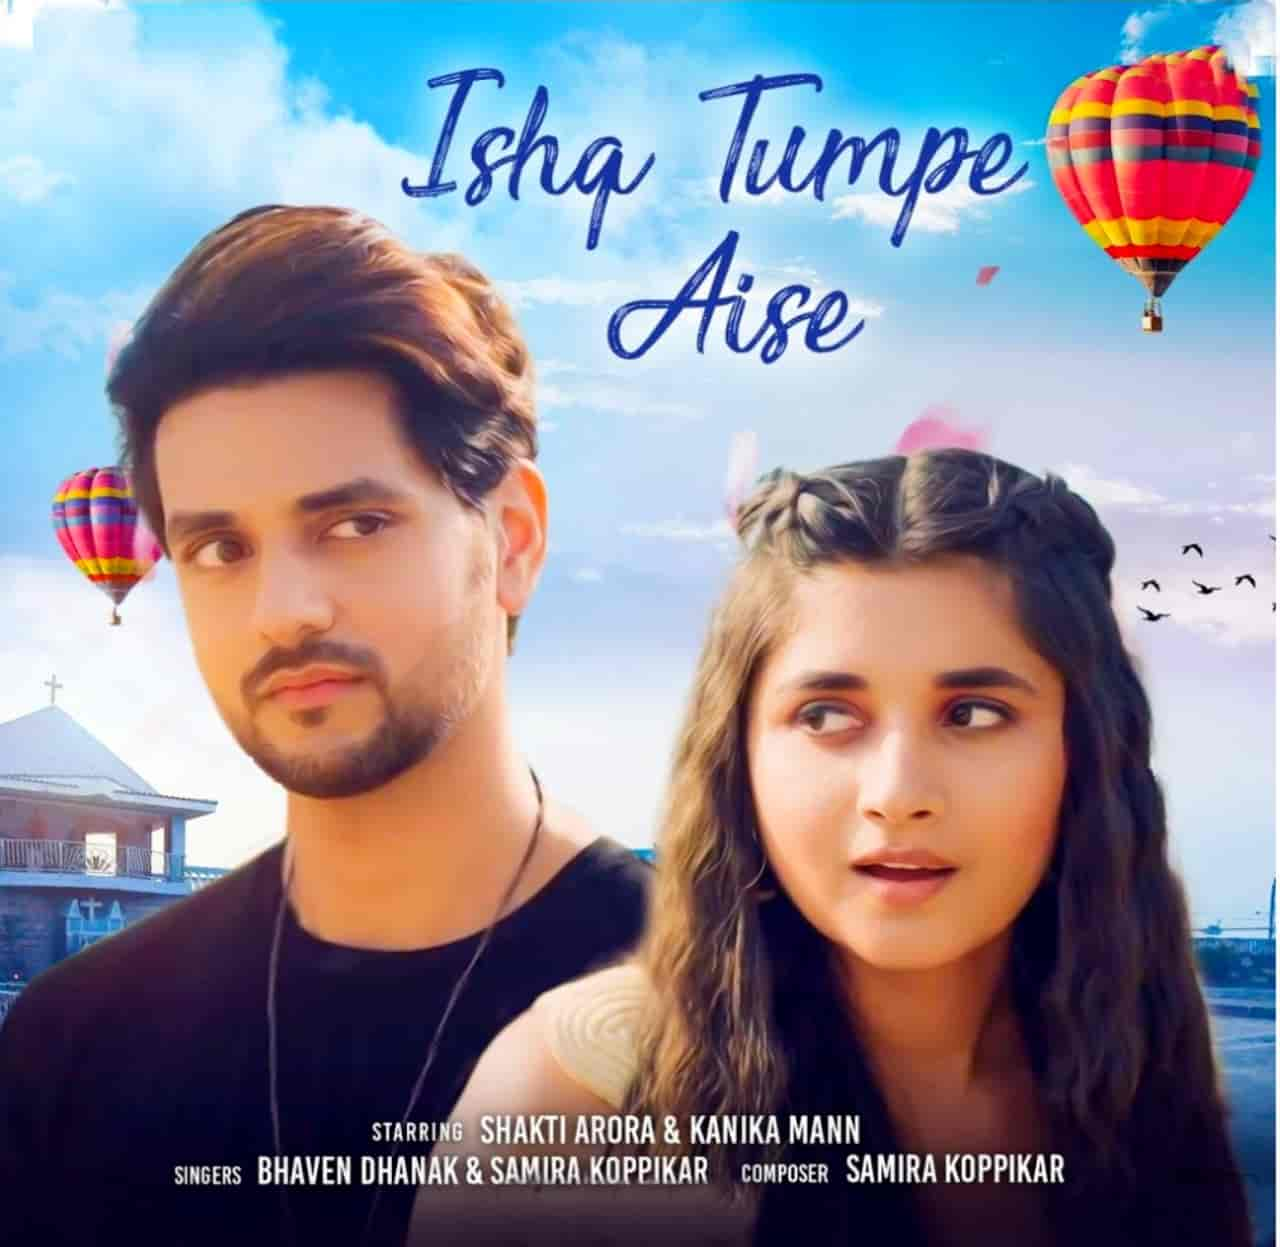 Ishq Tumpe Aise Hindi Song Lyrics Shakti Arora and Kanika Mann